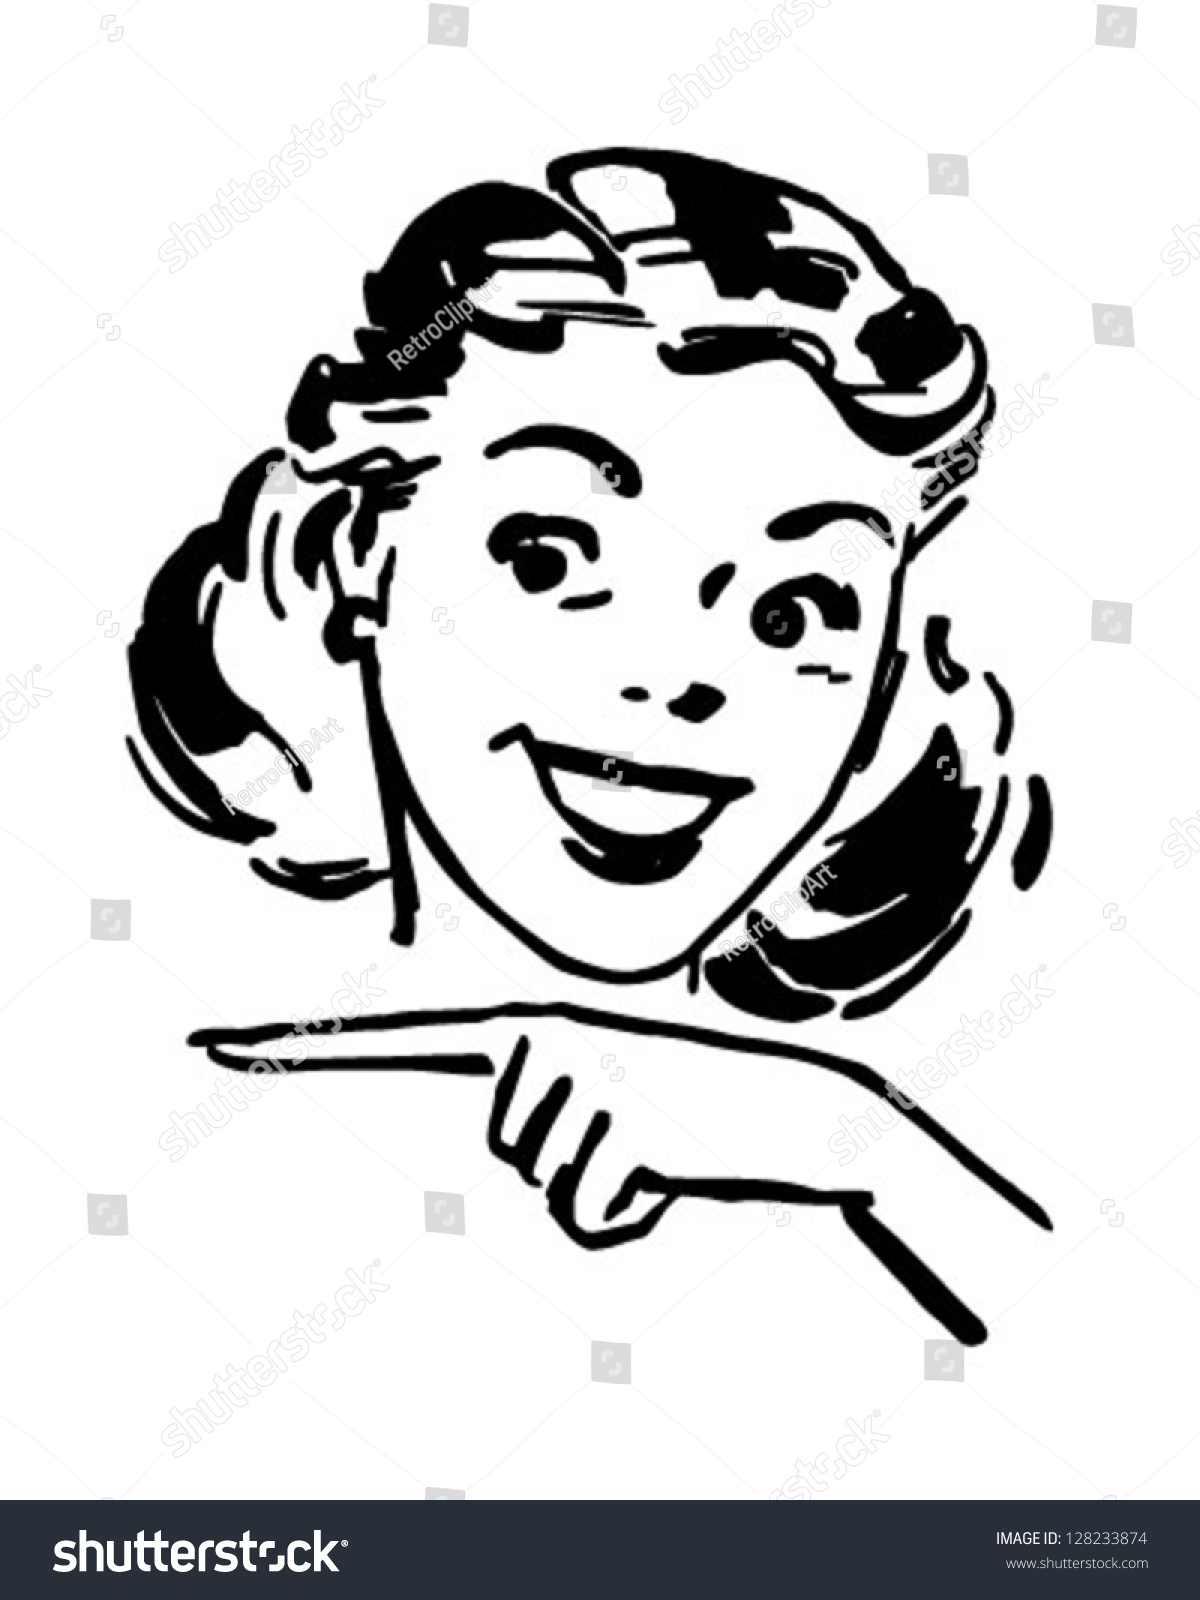 Cute Gal Pointing Retro Clipart Illustration Stock Vector ...